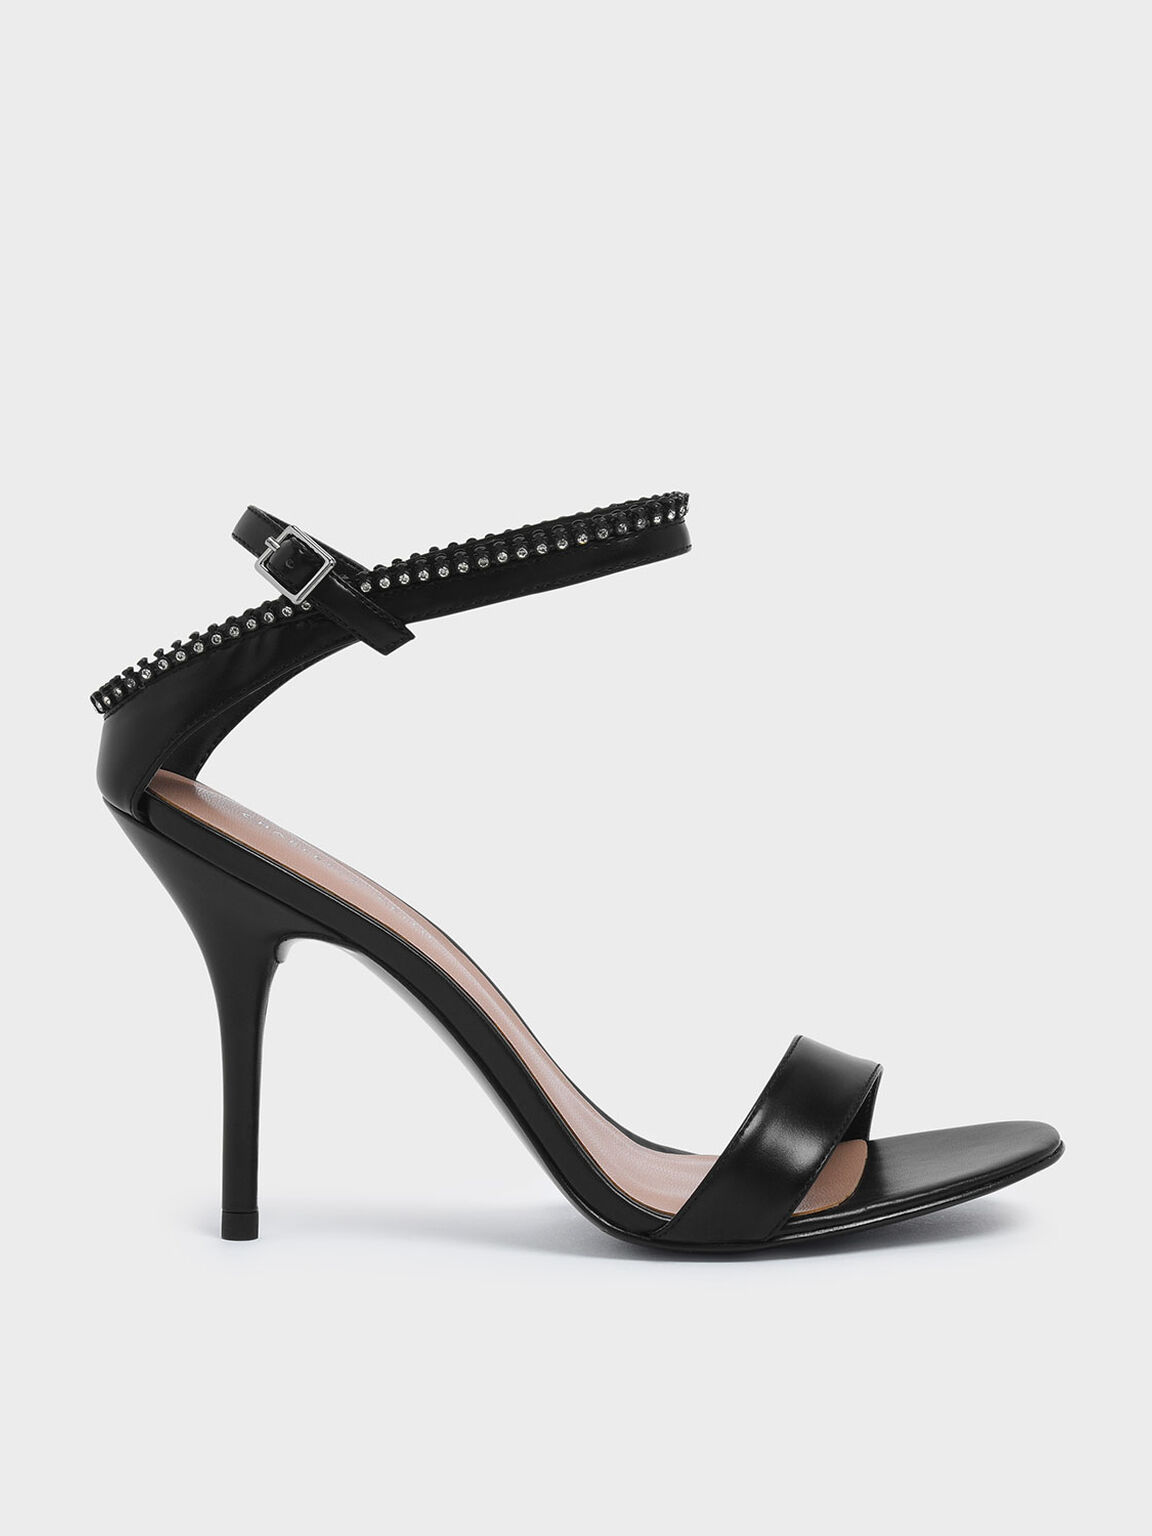 Gem Embellished Ankle Strap Heeled Sandals, Black, hi-res